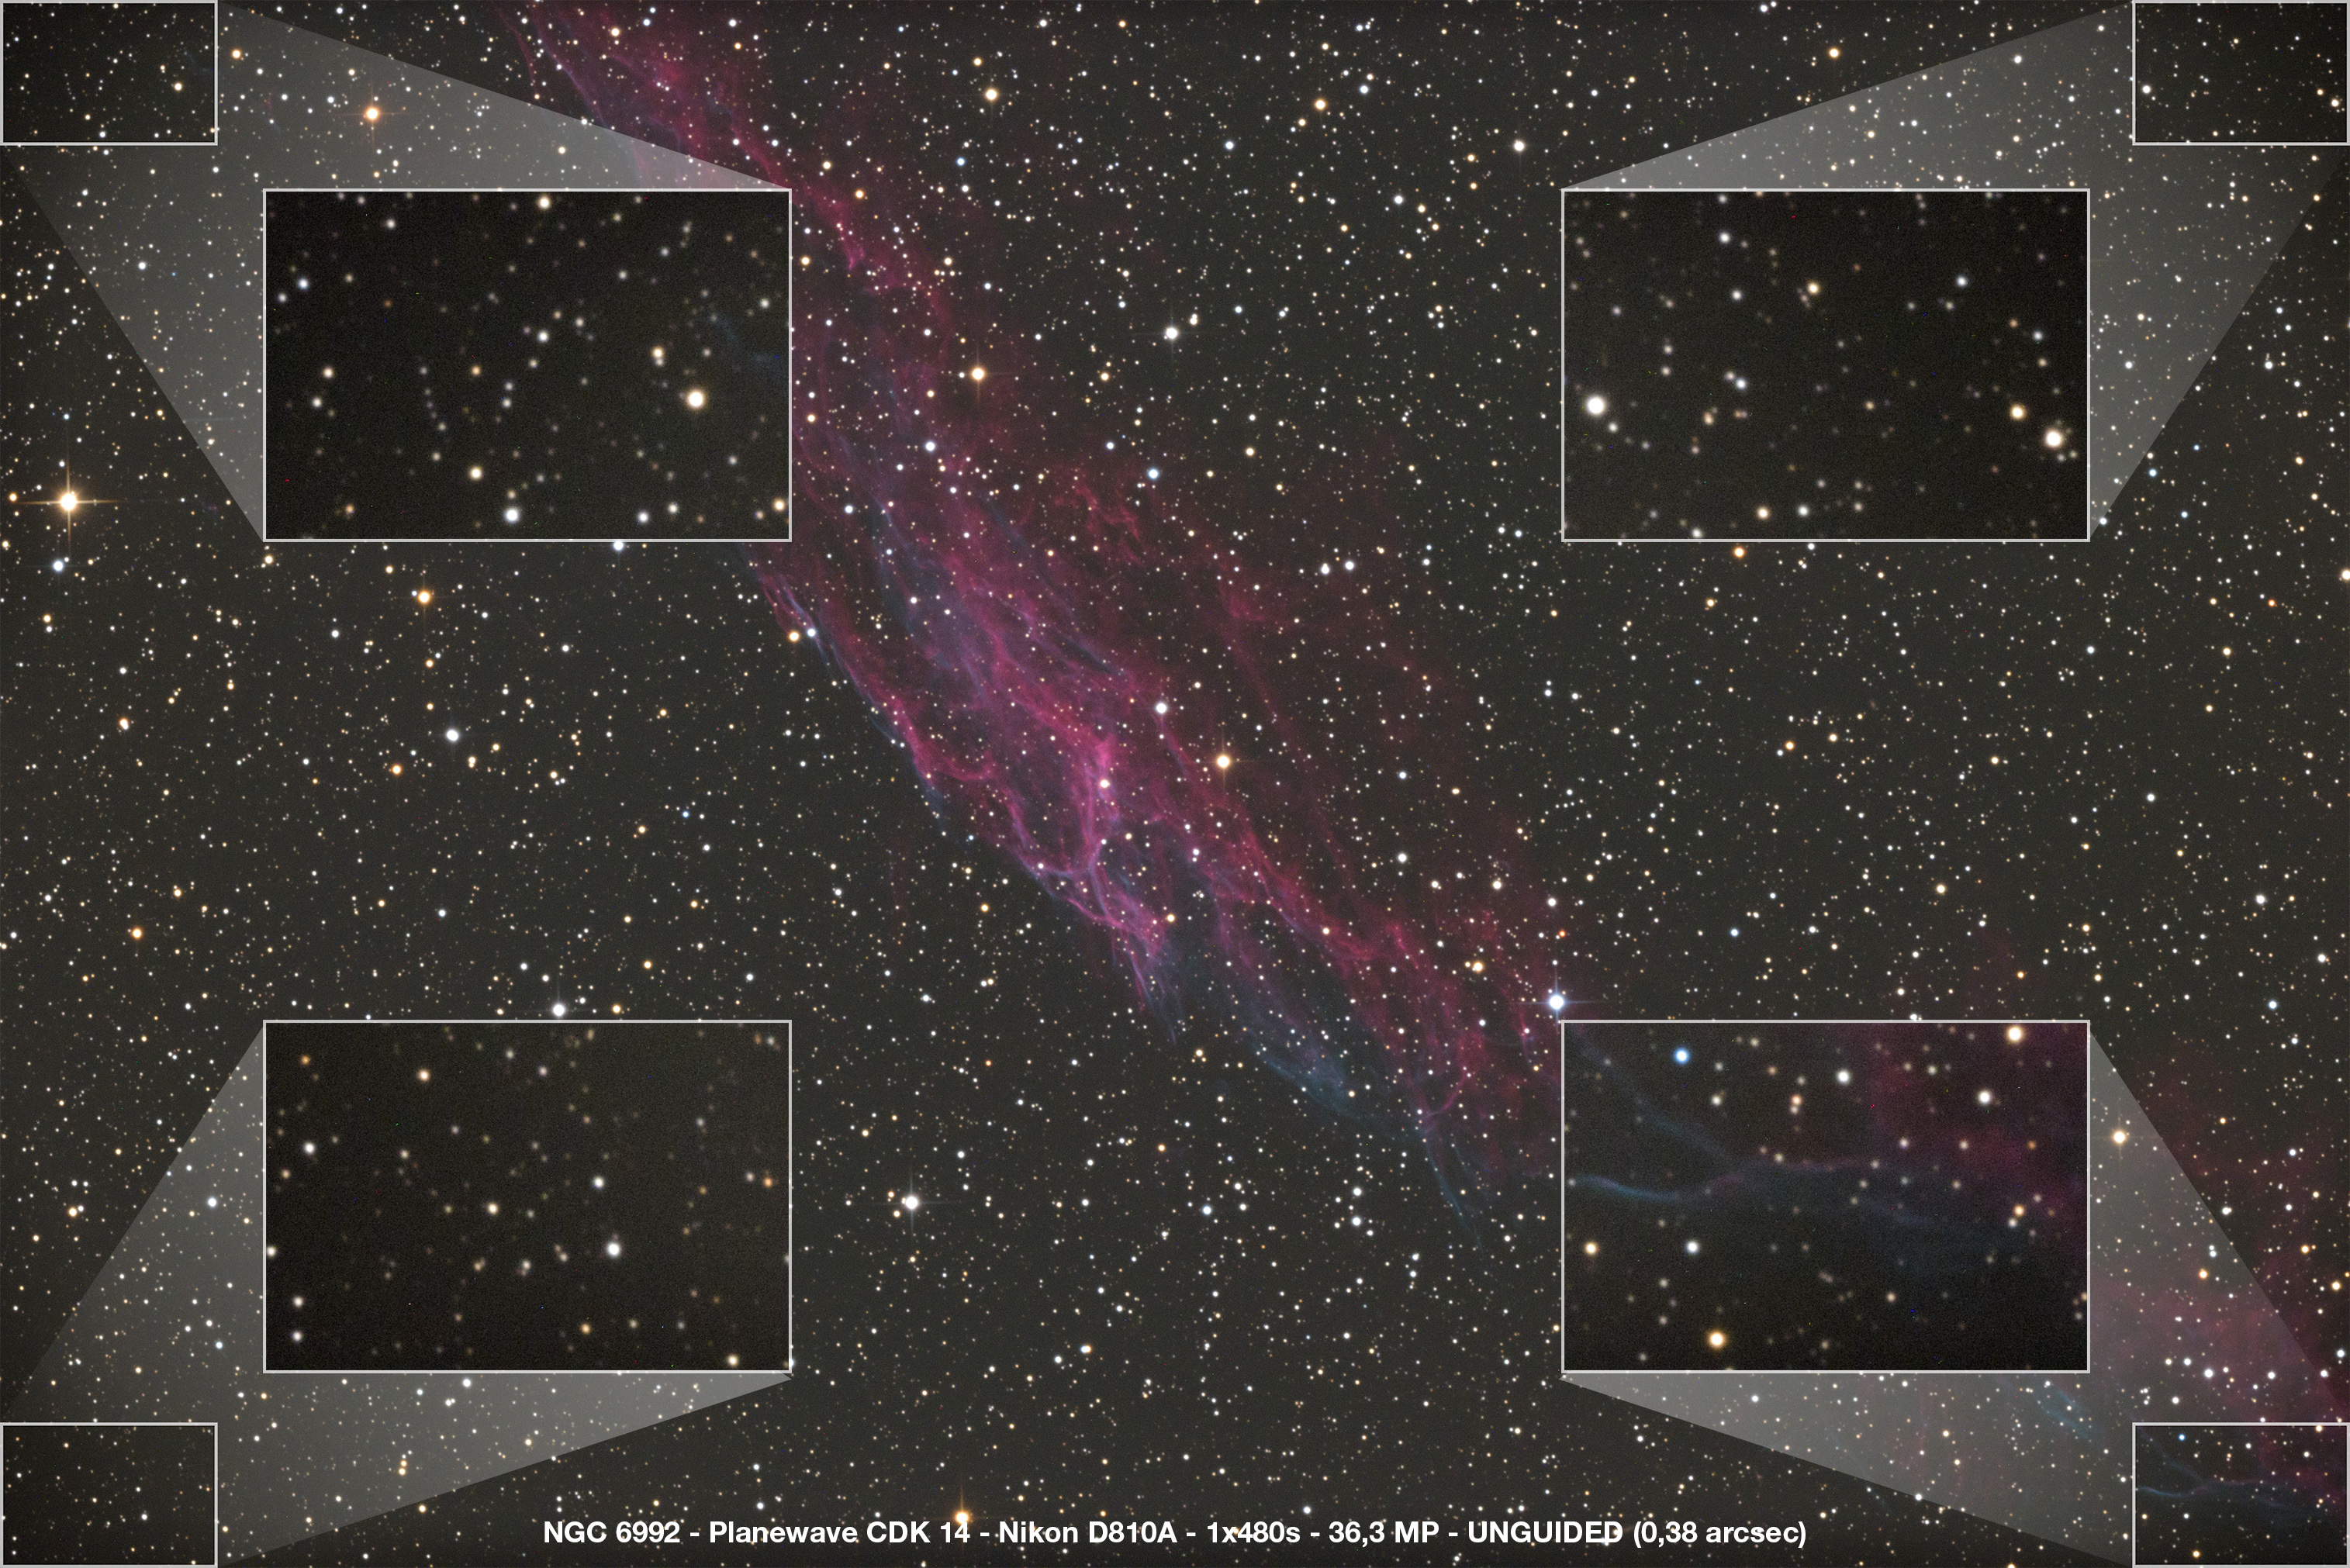 NGC 6992 – PlaneWave CDK14 – Nikon D810A – 1x480s – 36,3 MP – UNGUIDED (0,38 arcsec)